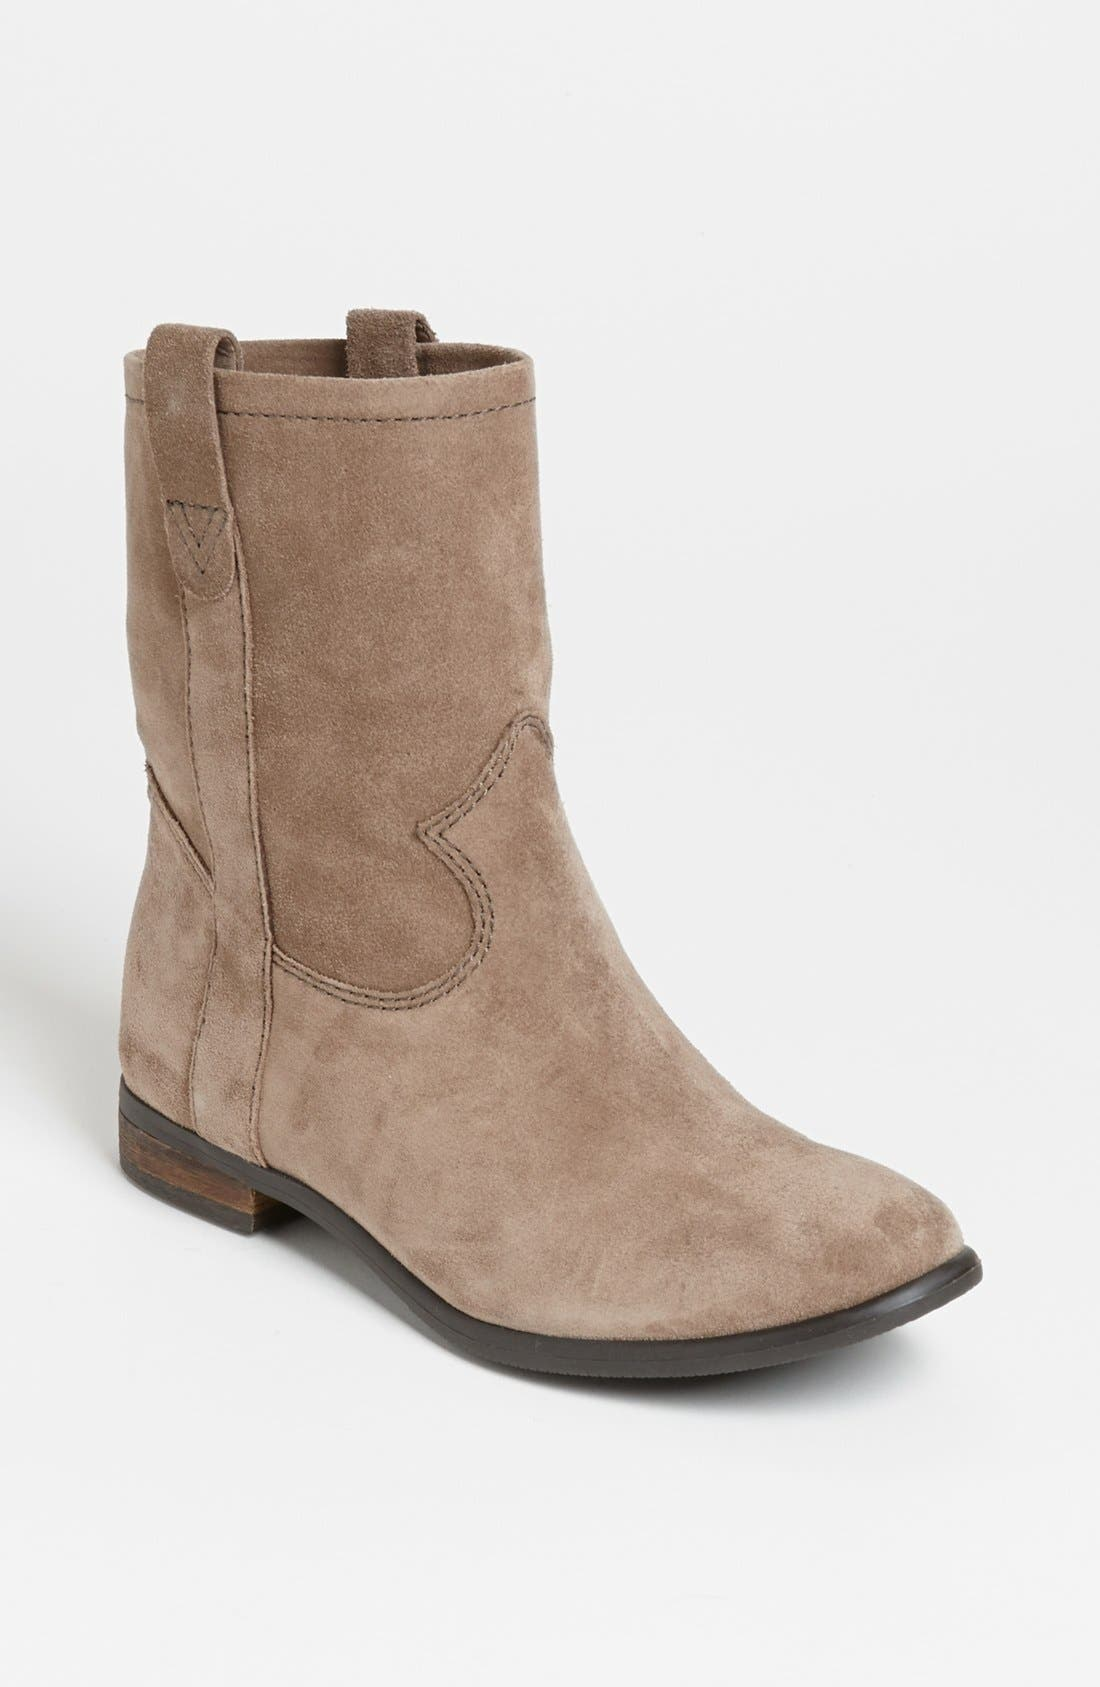 Main Image - Vince Camuto 'Fanti' Boot